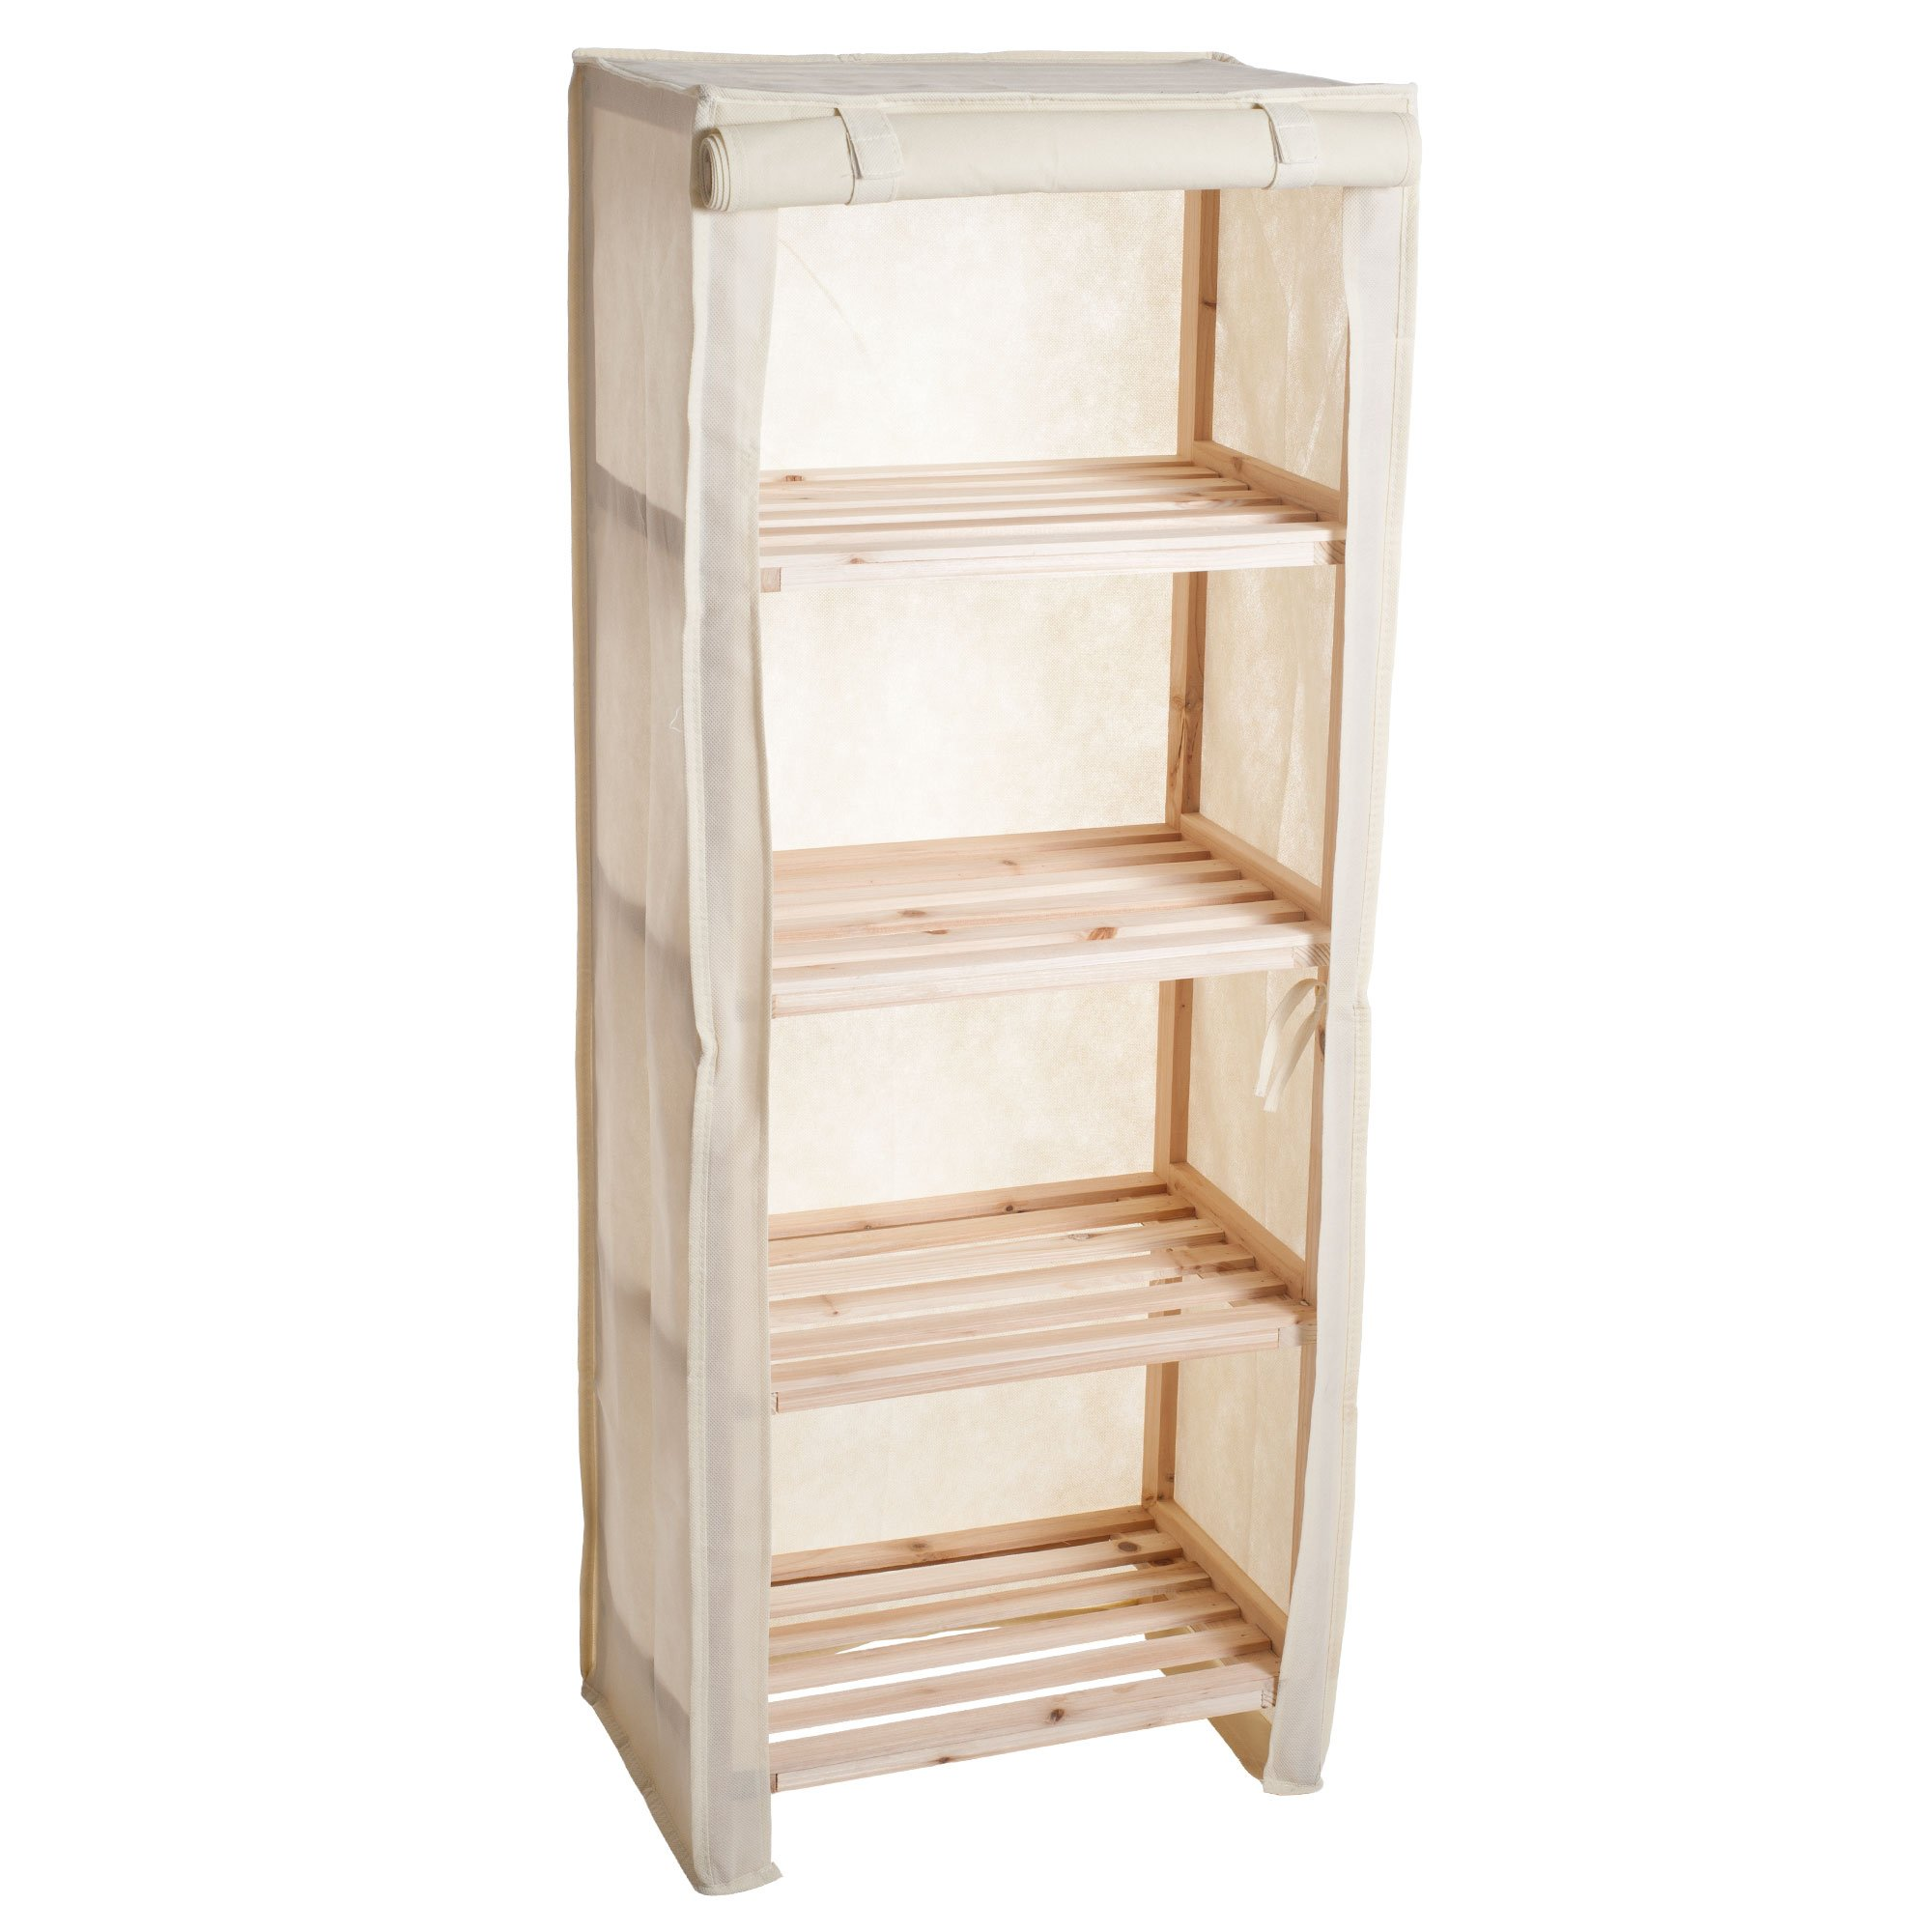 Lavish Home Wood Shelf With Removable Cover by Lavish Home